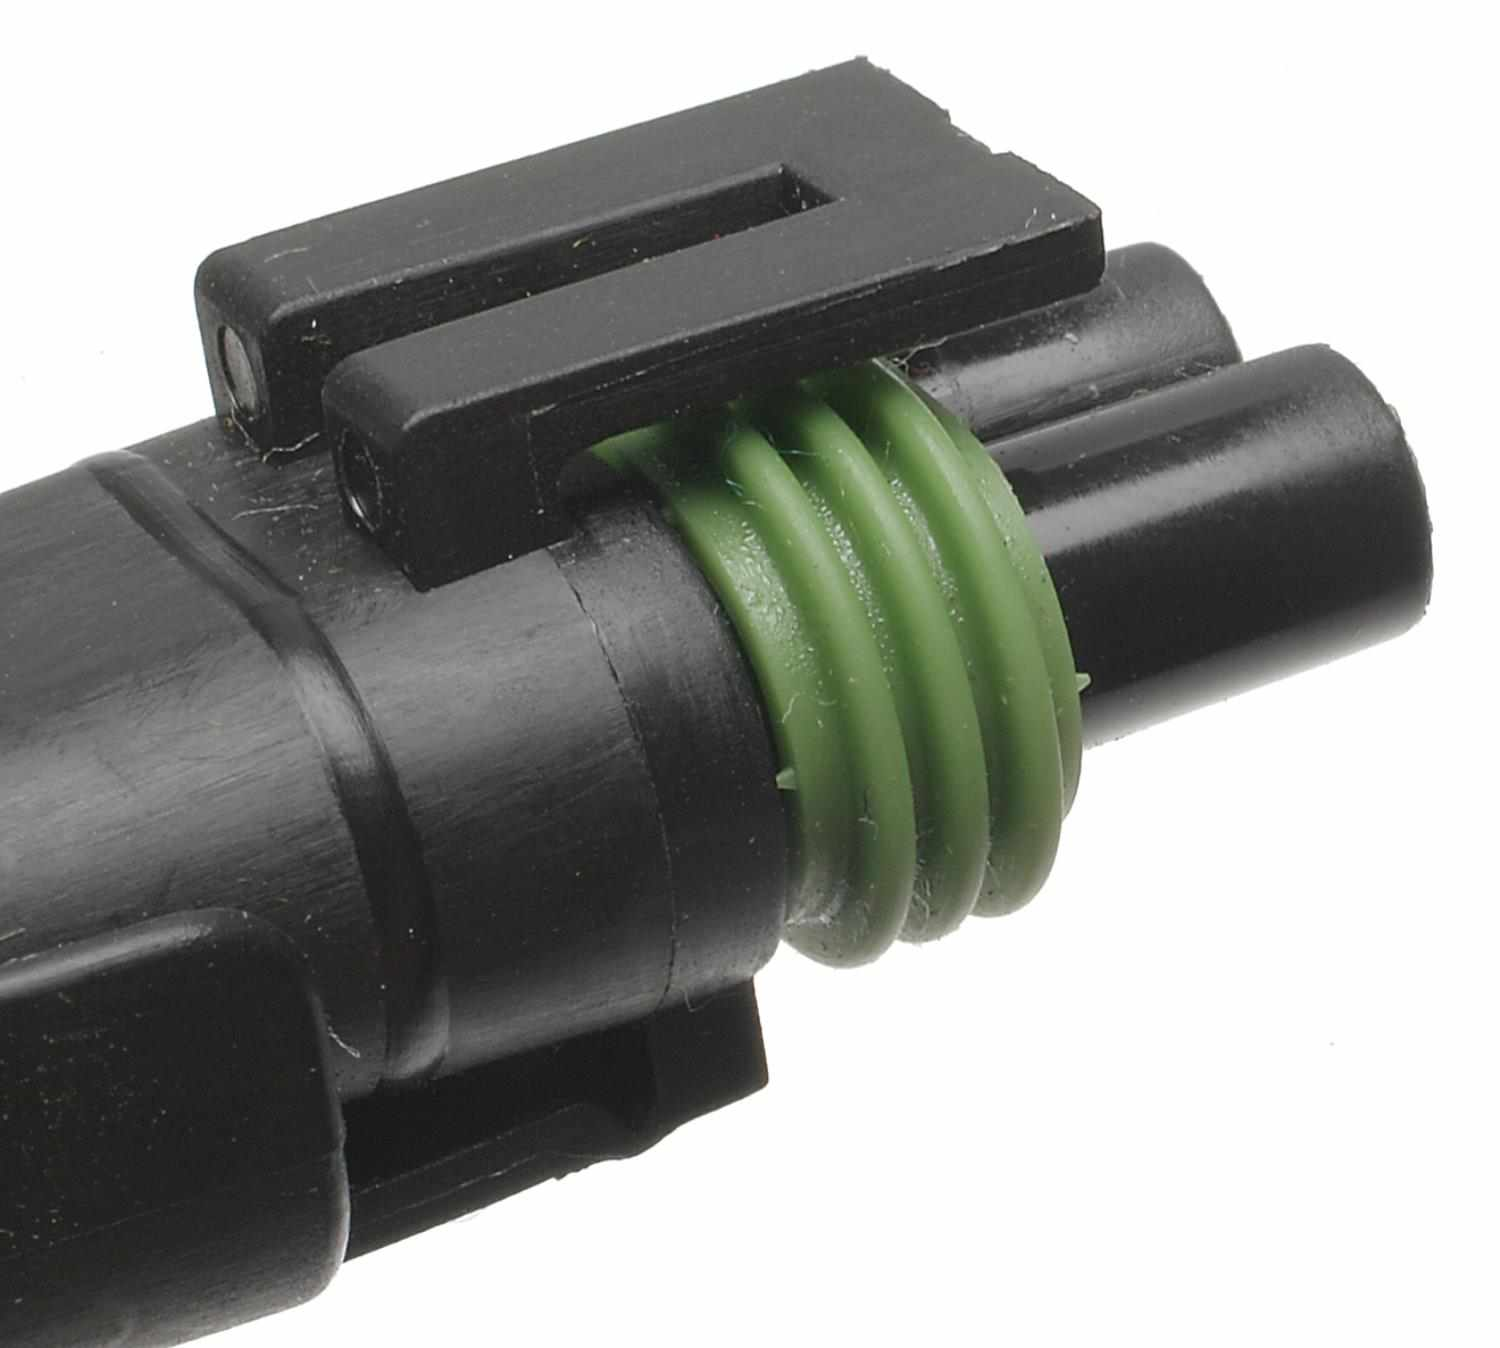 ACDELCO PROFESSIONAL - Mixture Control Solenoid Pigtail Assembly - DCC PT1917